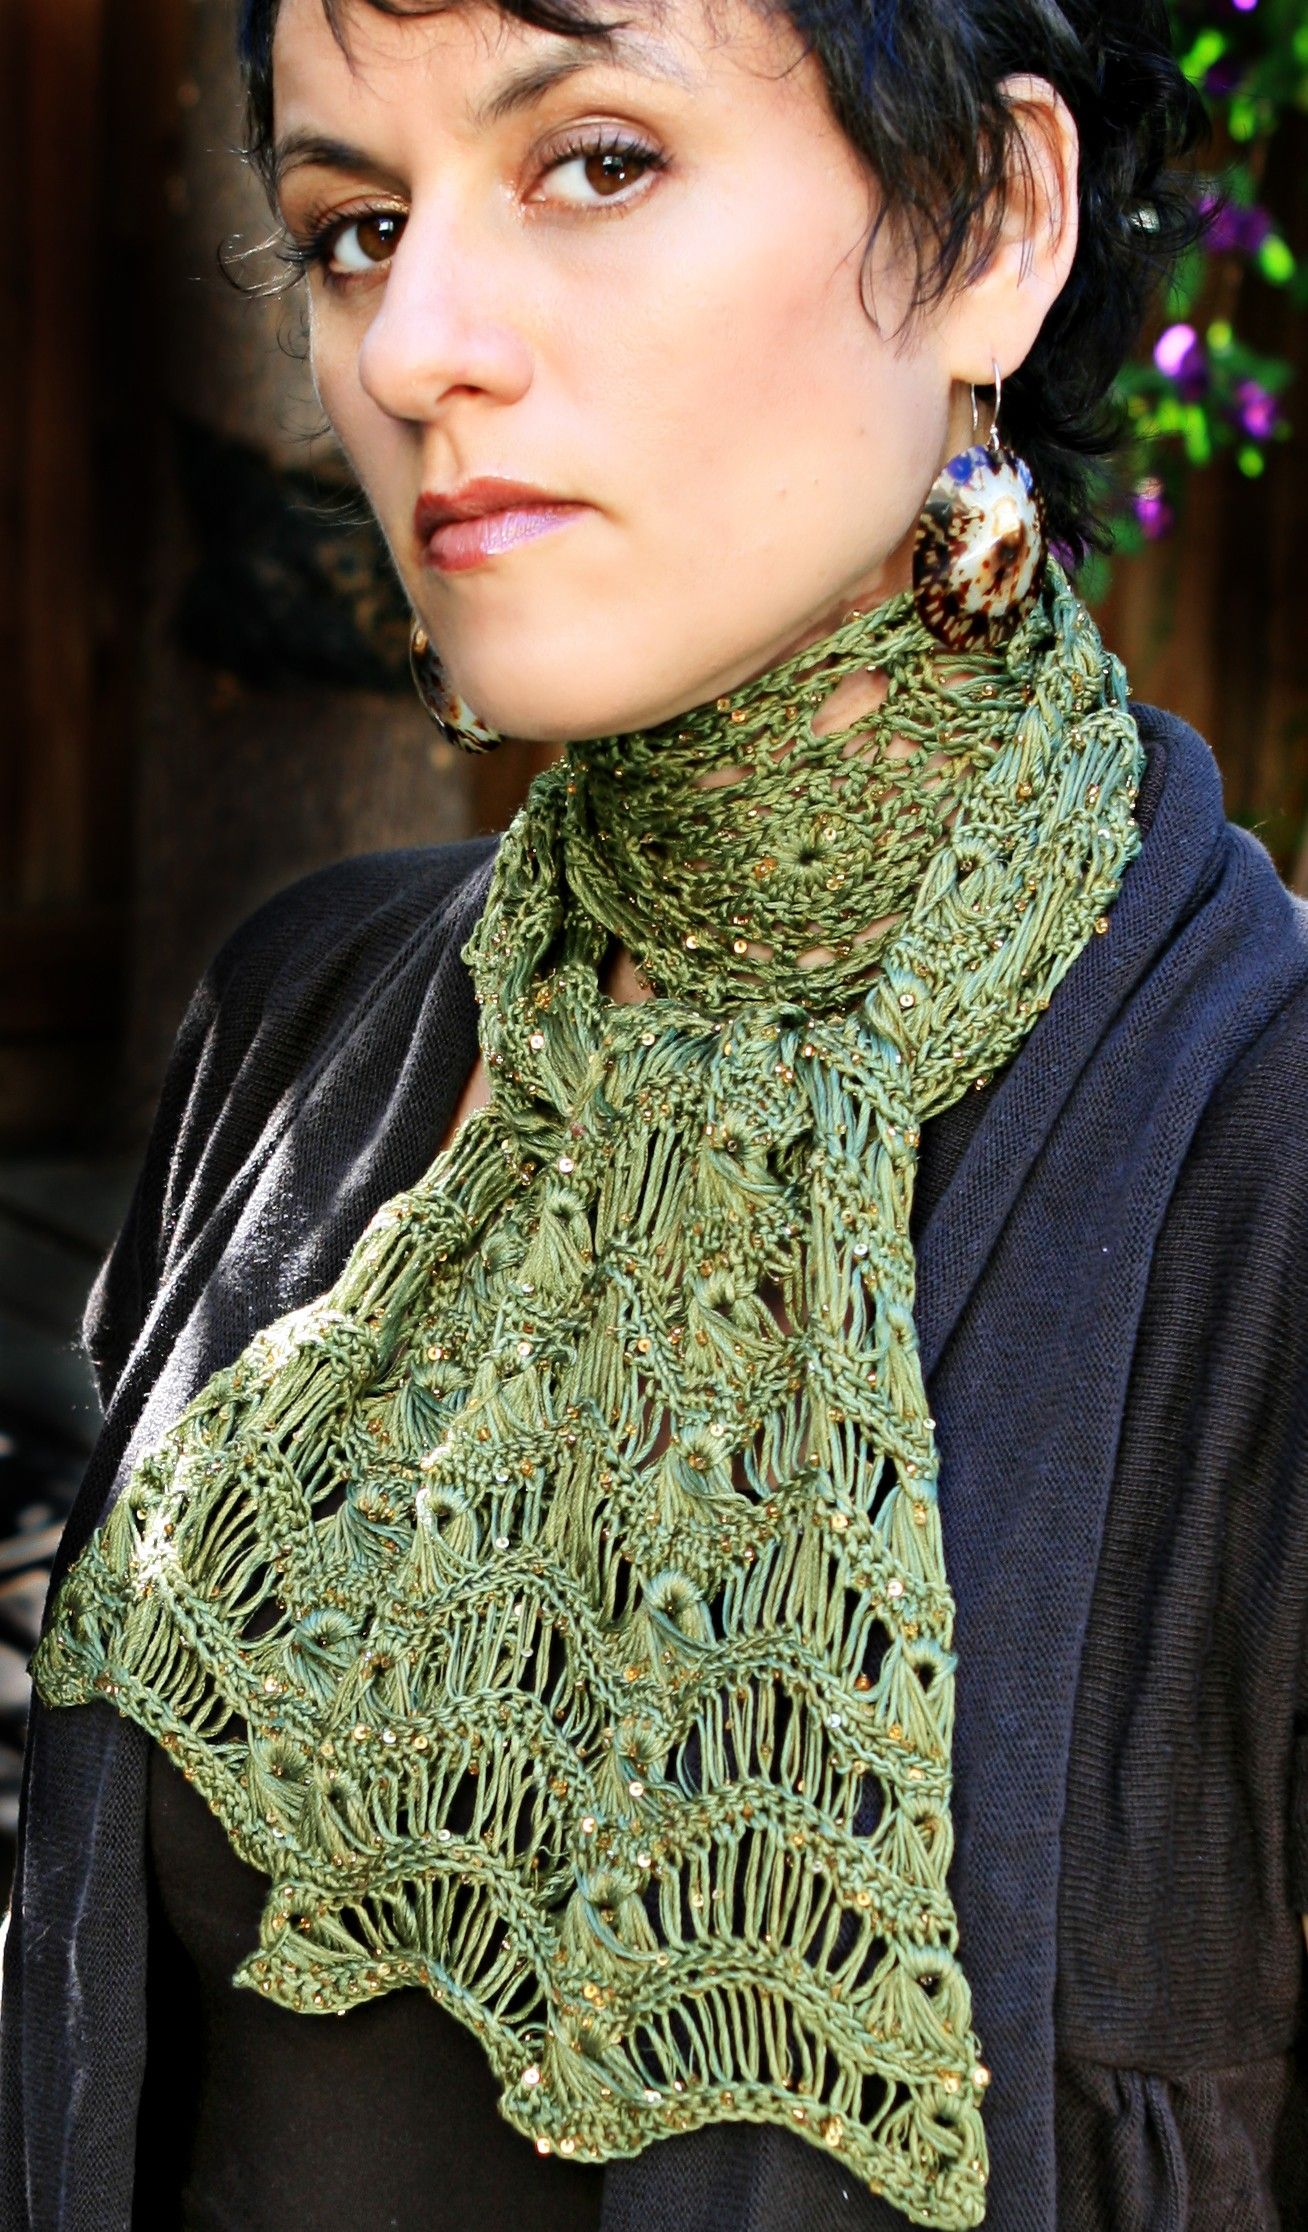 Crochet, Broomstick Lace Pattern - Crochet Lace Scarves | Recipes to ...